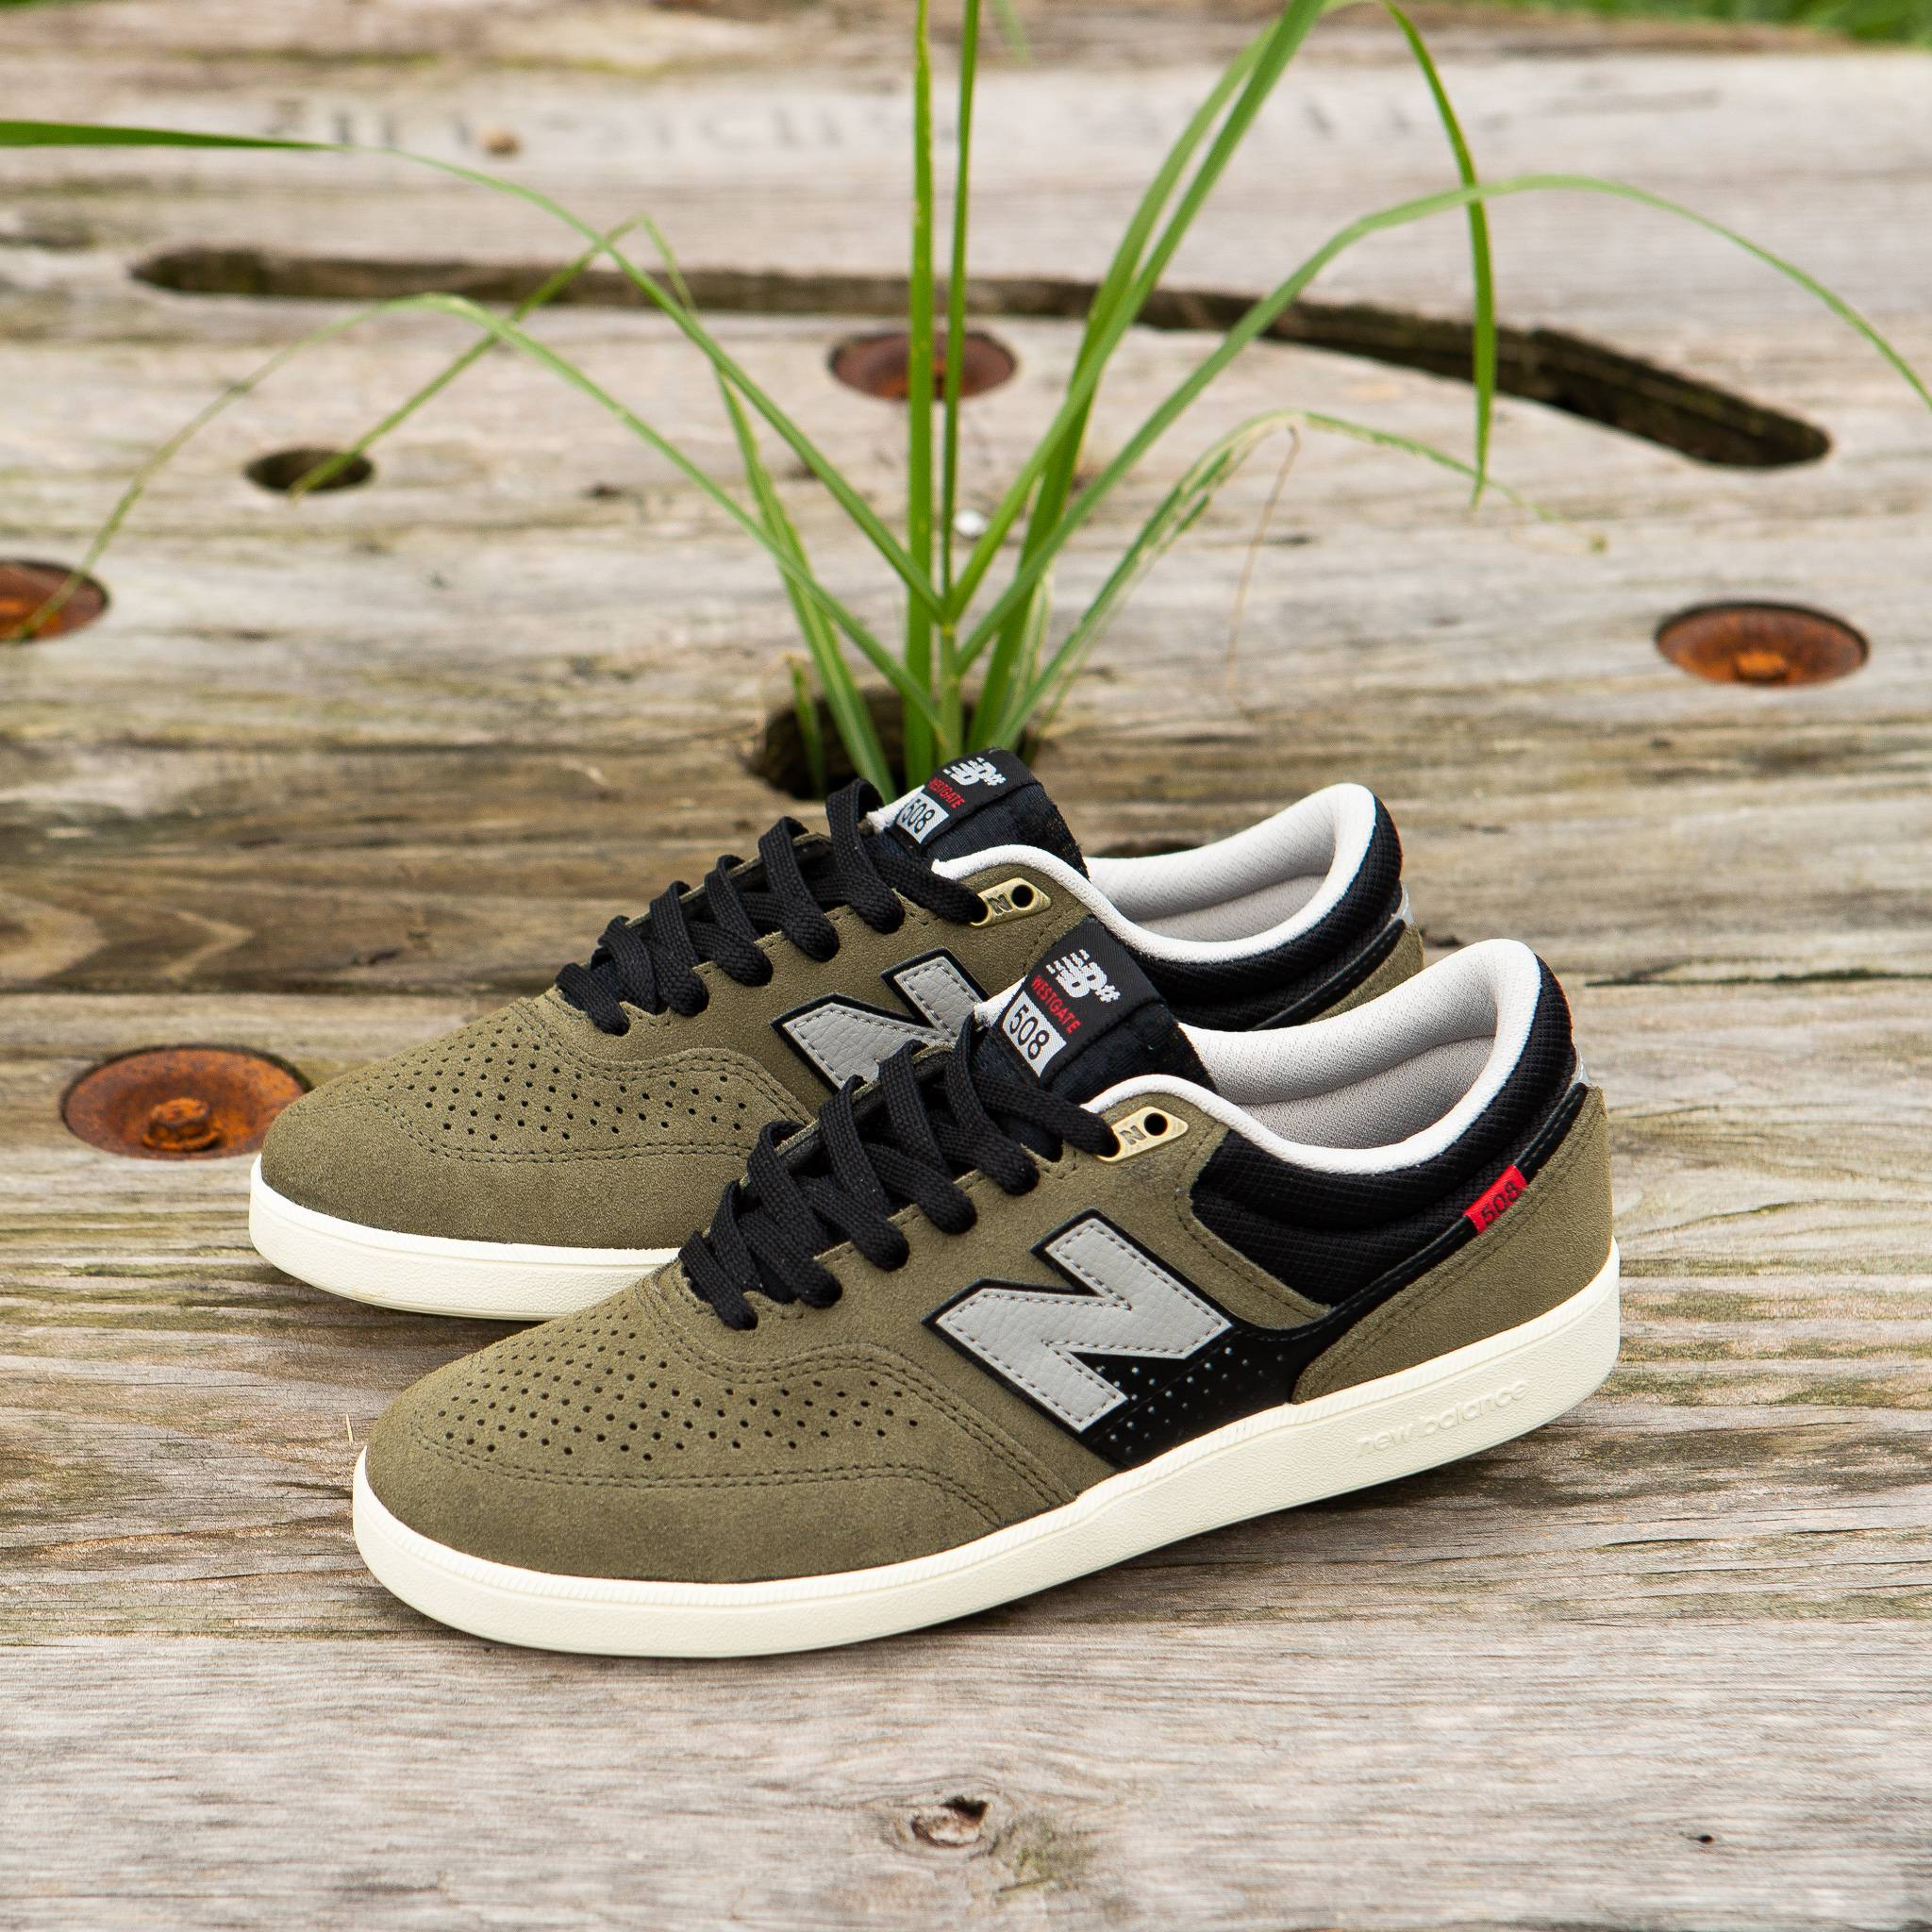 The 508 from New Balance in Dusty Olive and Black